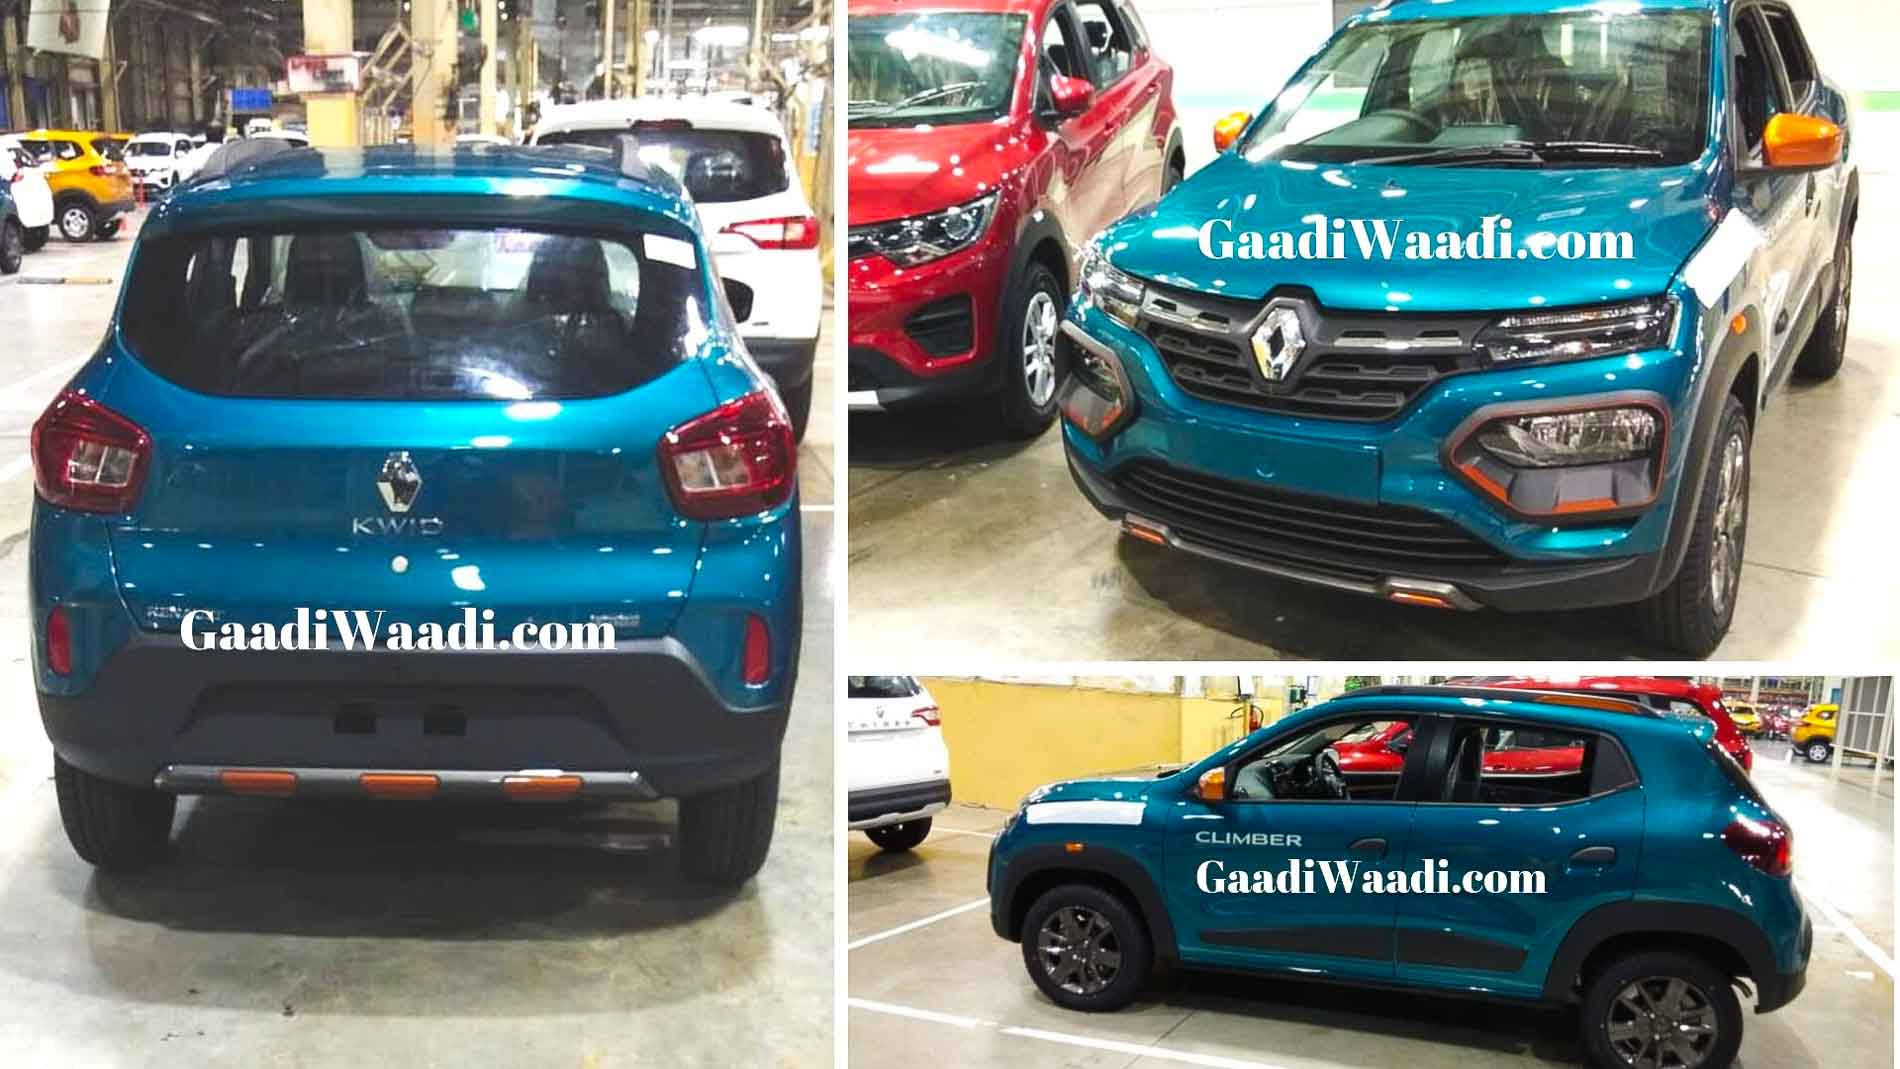 2015 - [Renault] Kwid [BBA] (Inde) [BBB] (Brésil) - Page 33 2020-renault-kwid-climber-facelift-pics-1